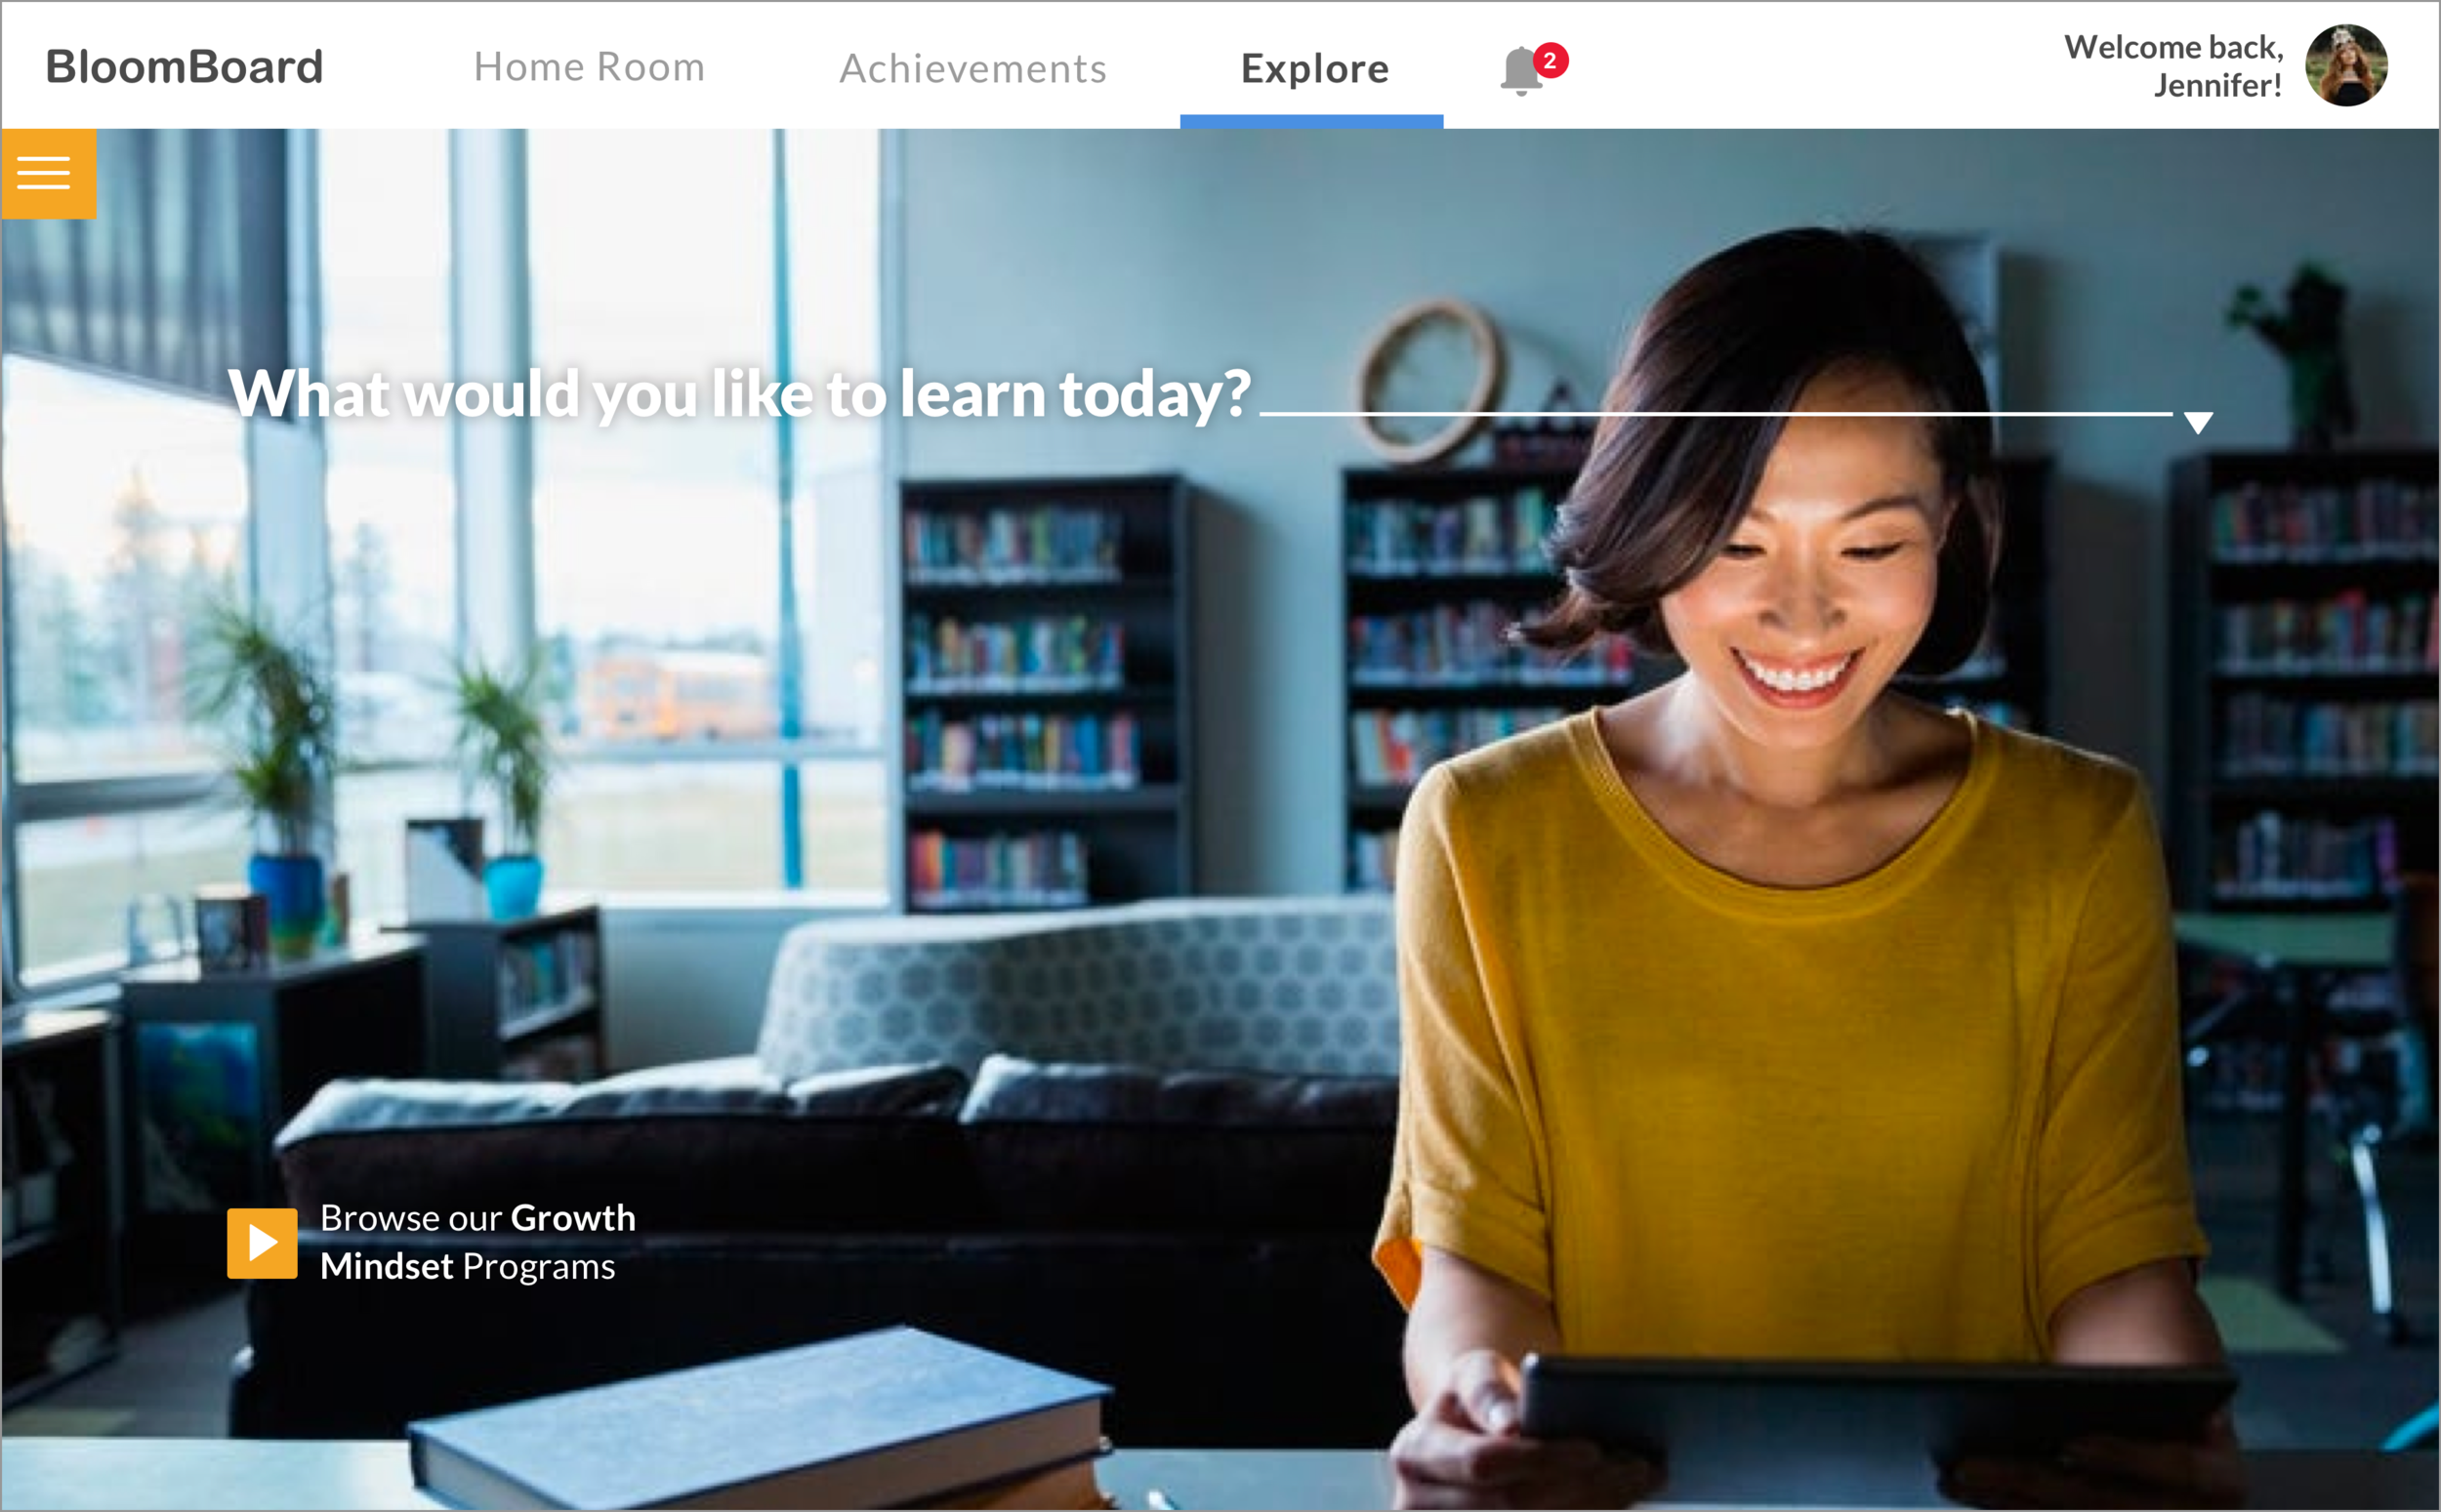 Explore Page redesign